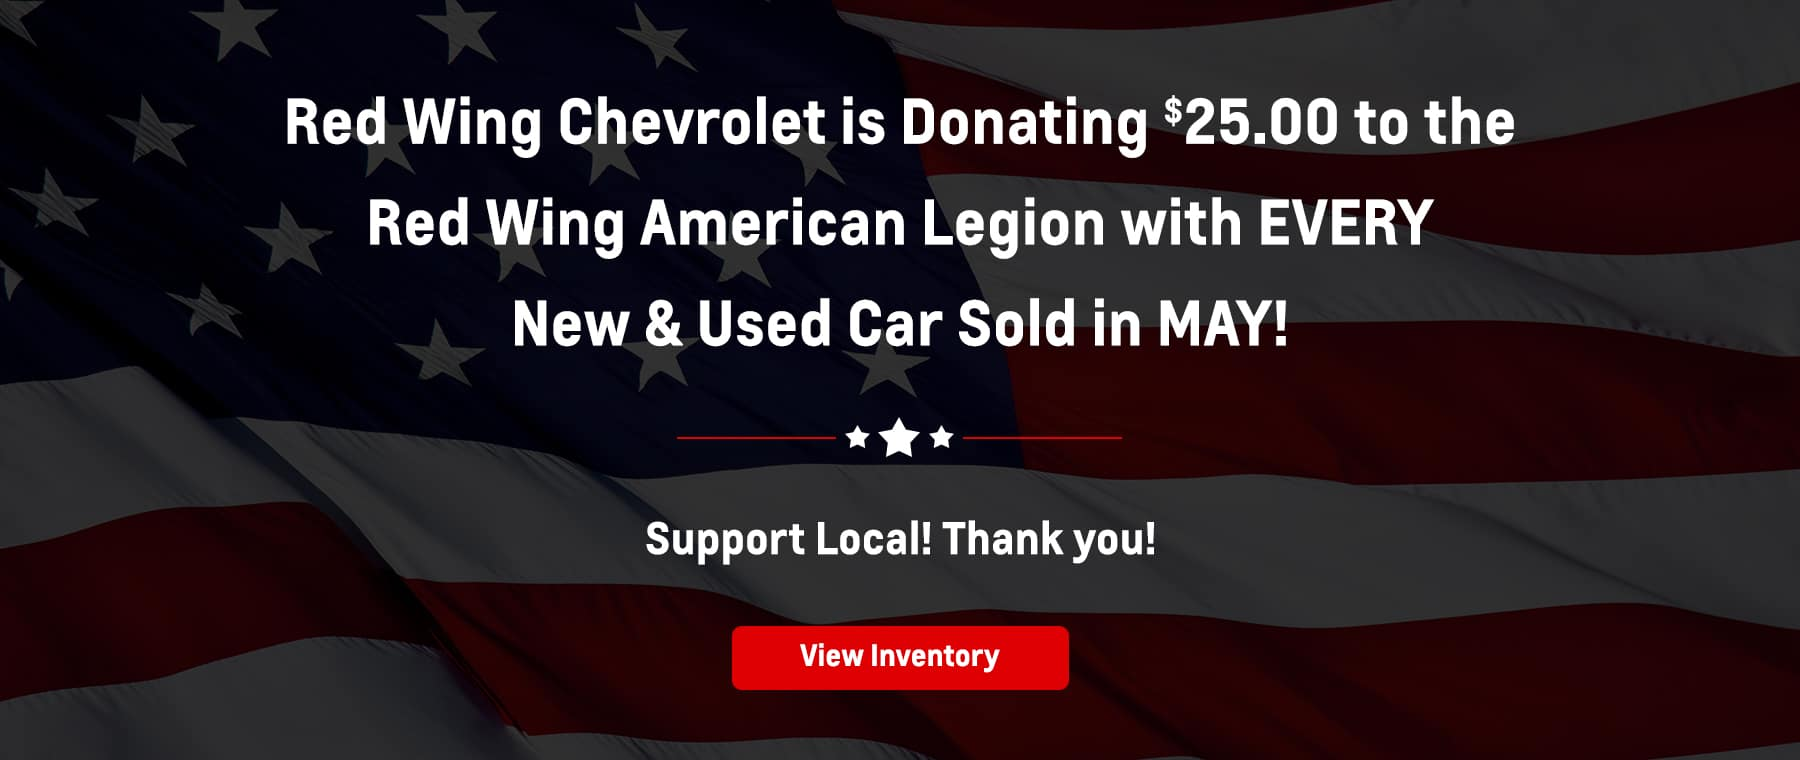 Red Wing Chevrolet is Donating $25.00 to the Red Wing American Legion with EVERY New & Used Car Sold in MAY!